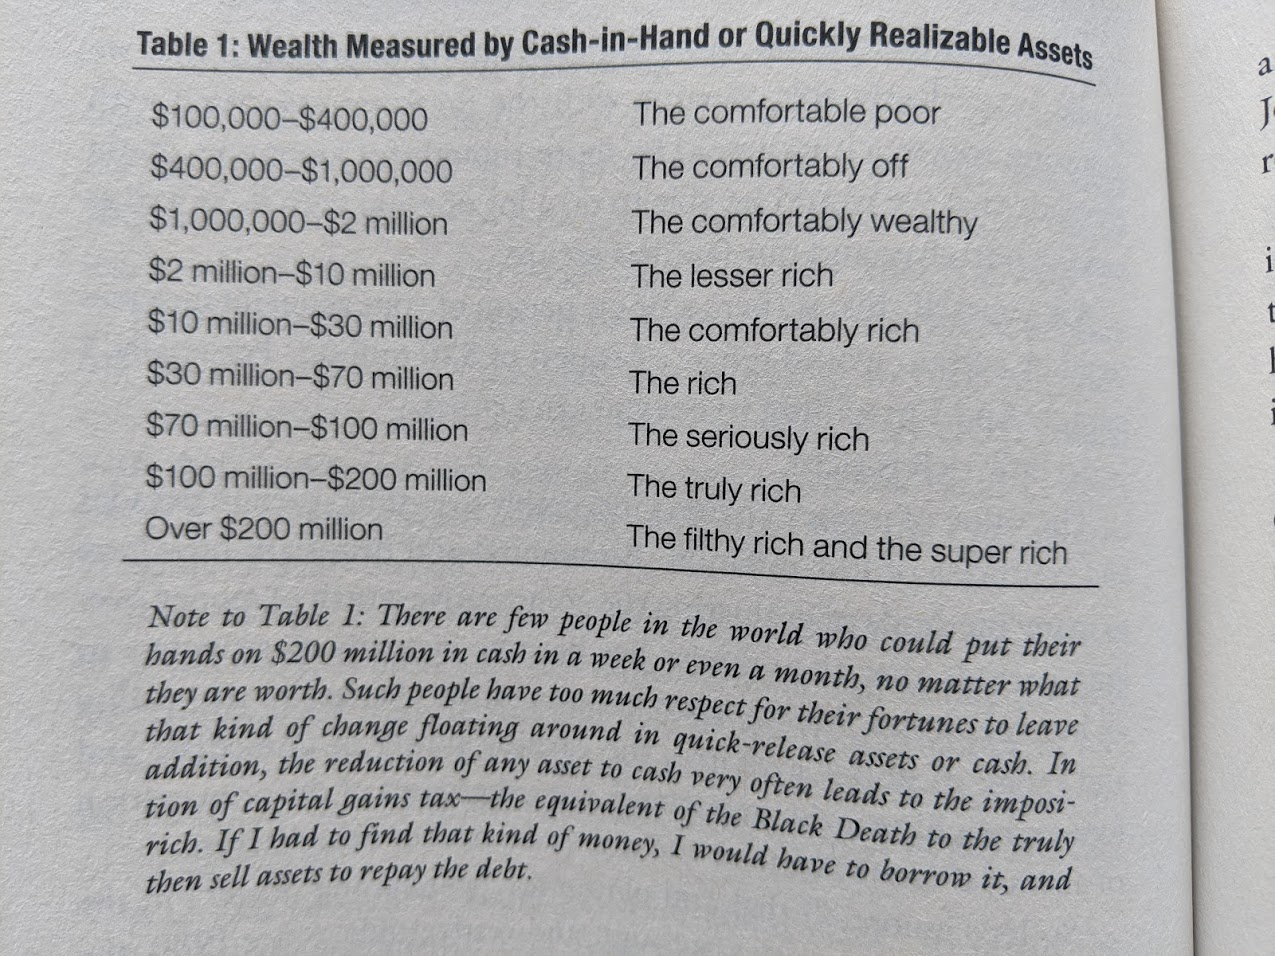 wealth-measured-by-cash-in-hand